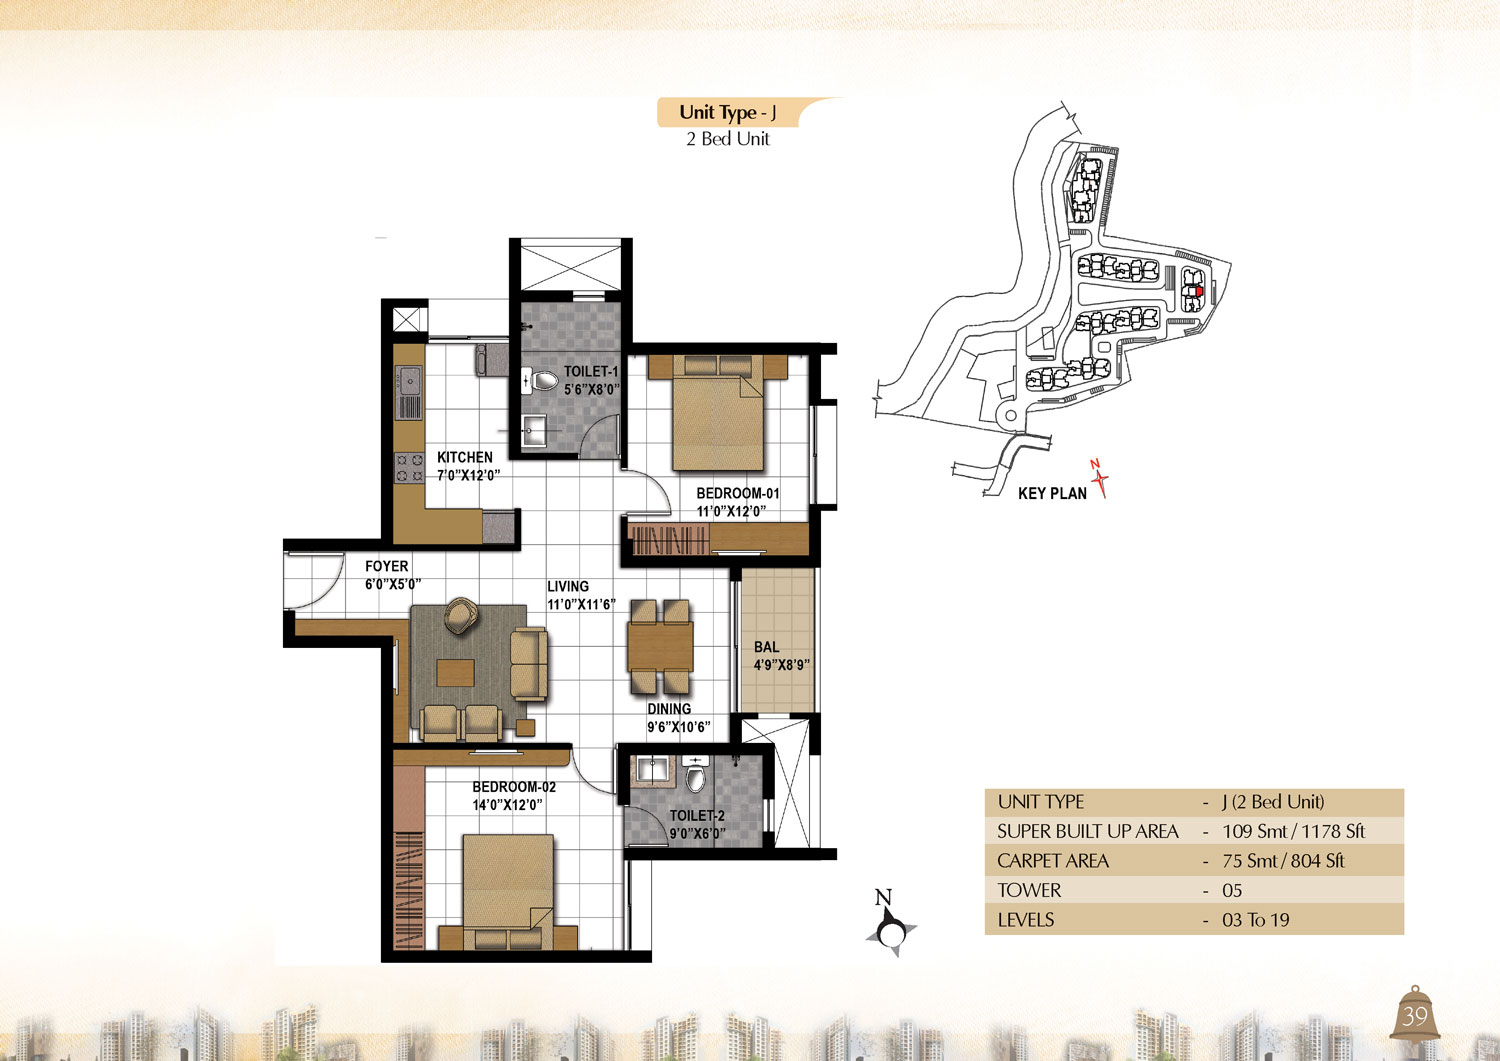 Type J - 2 Bed -  1178 Sq Ft